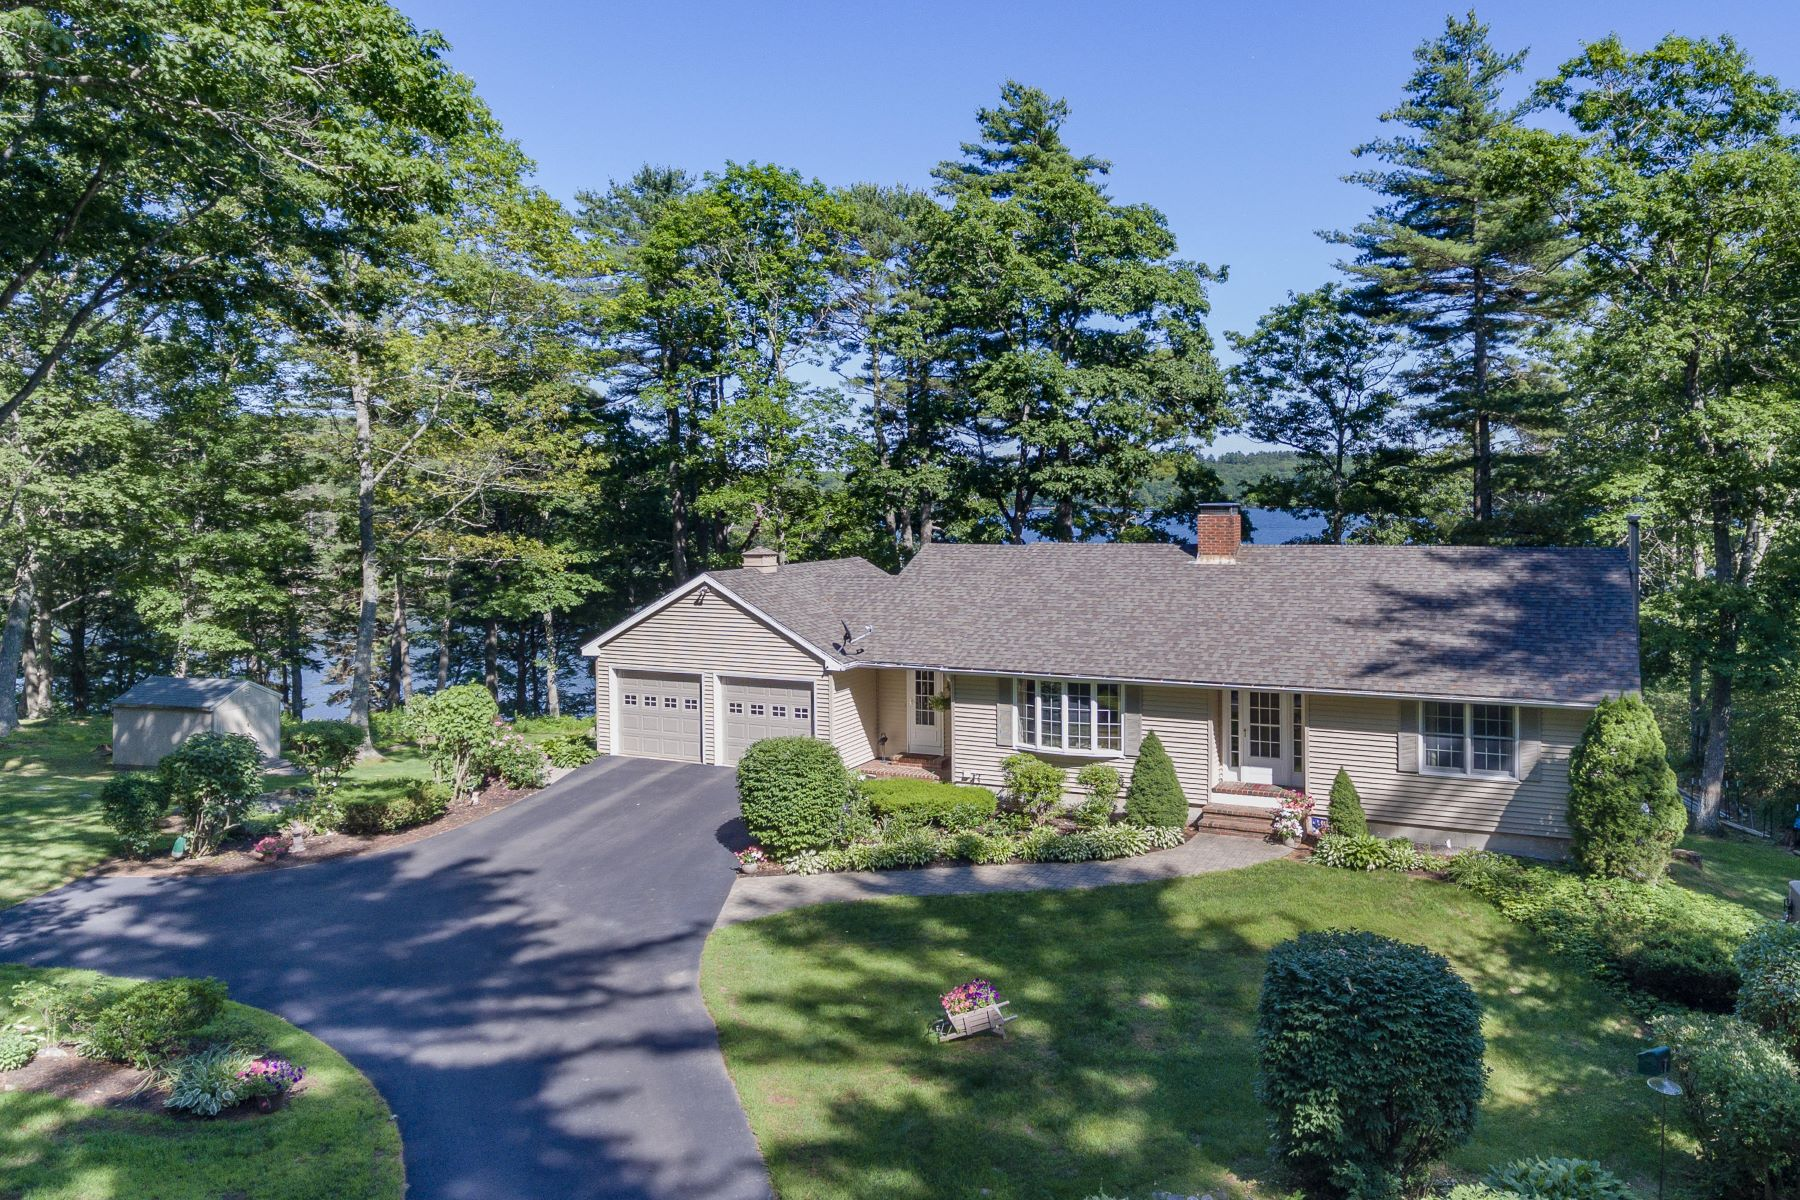 Single Family Homes for Active at 216 Youngs Point Road Wiscasset, Maine 04578 United States